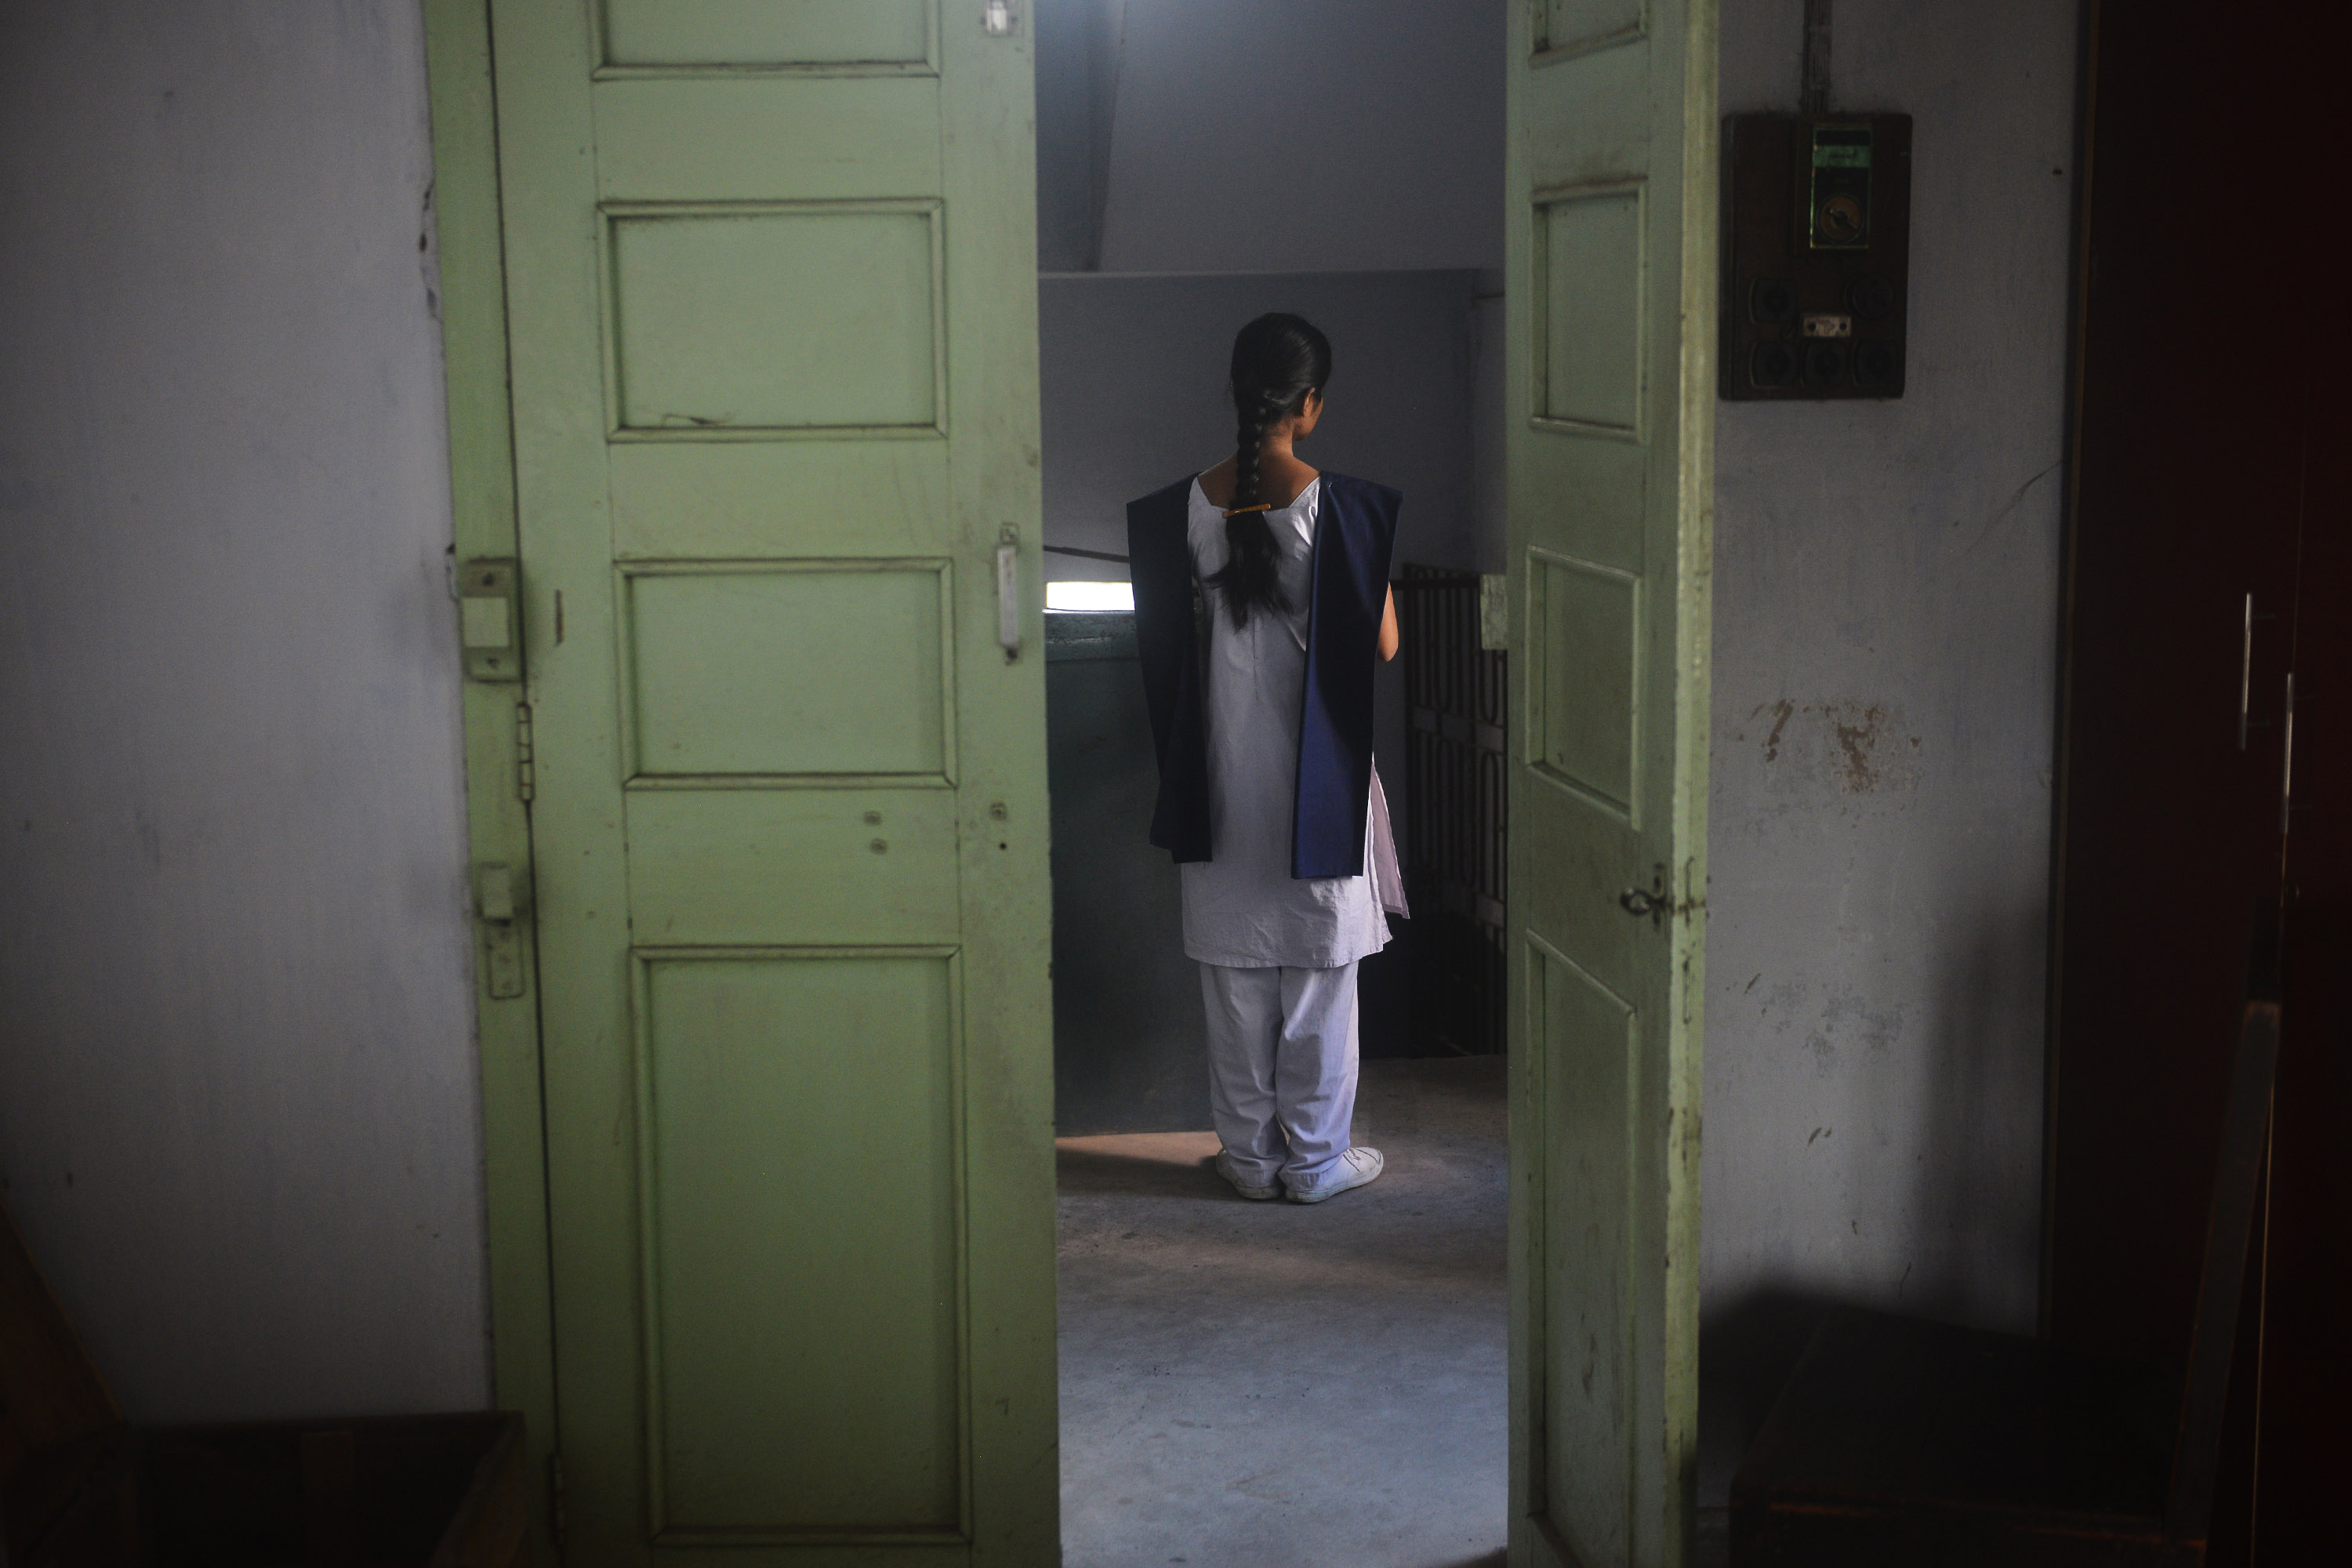 A student waits for her friends to join her for a class. Credit: Sutirtha Chatterjee